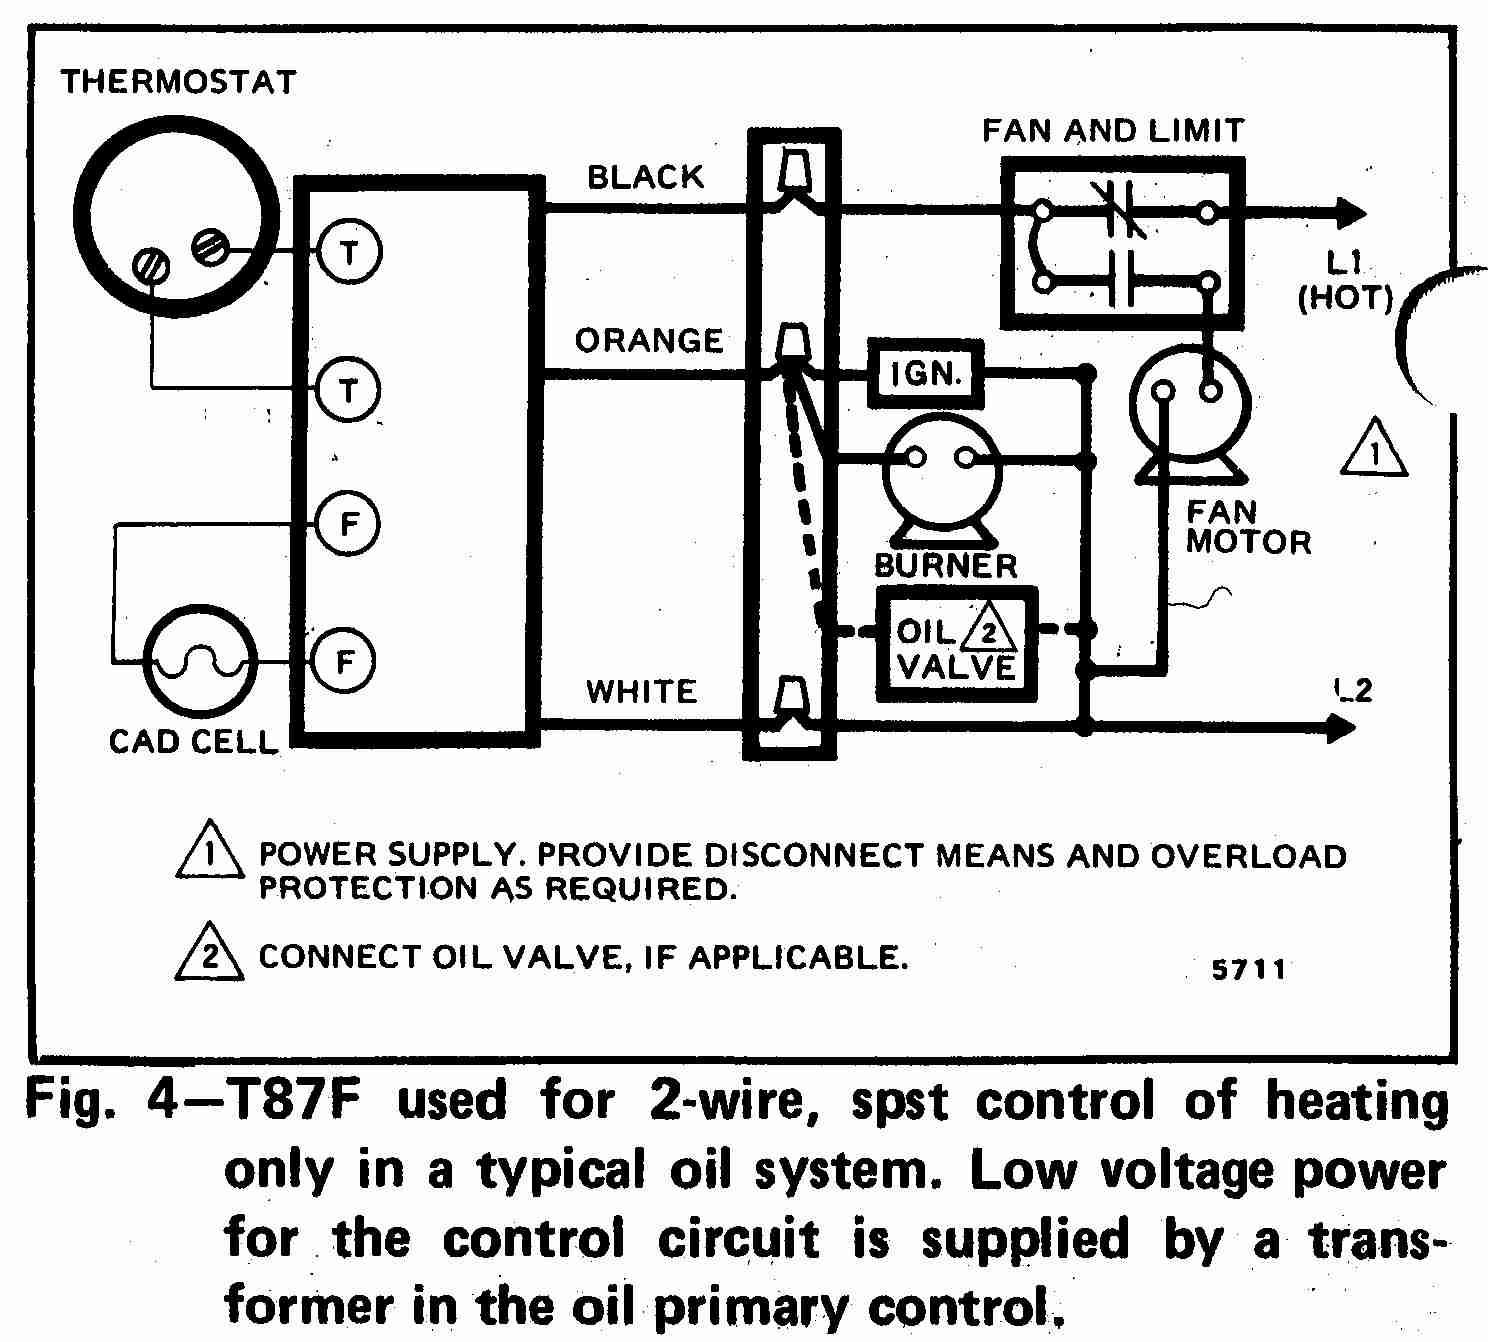 hight resolution of wiring diagrams for hvac wiring diagram portal rh 3 3 kaminari music de home air conditioning electrical wiring diagram intertherm mobile home air